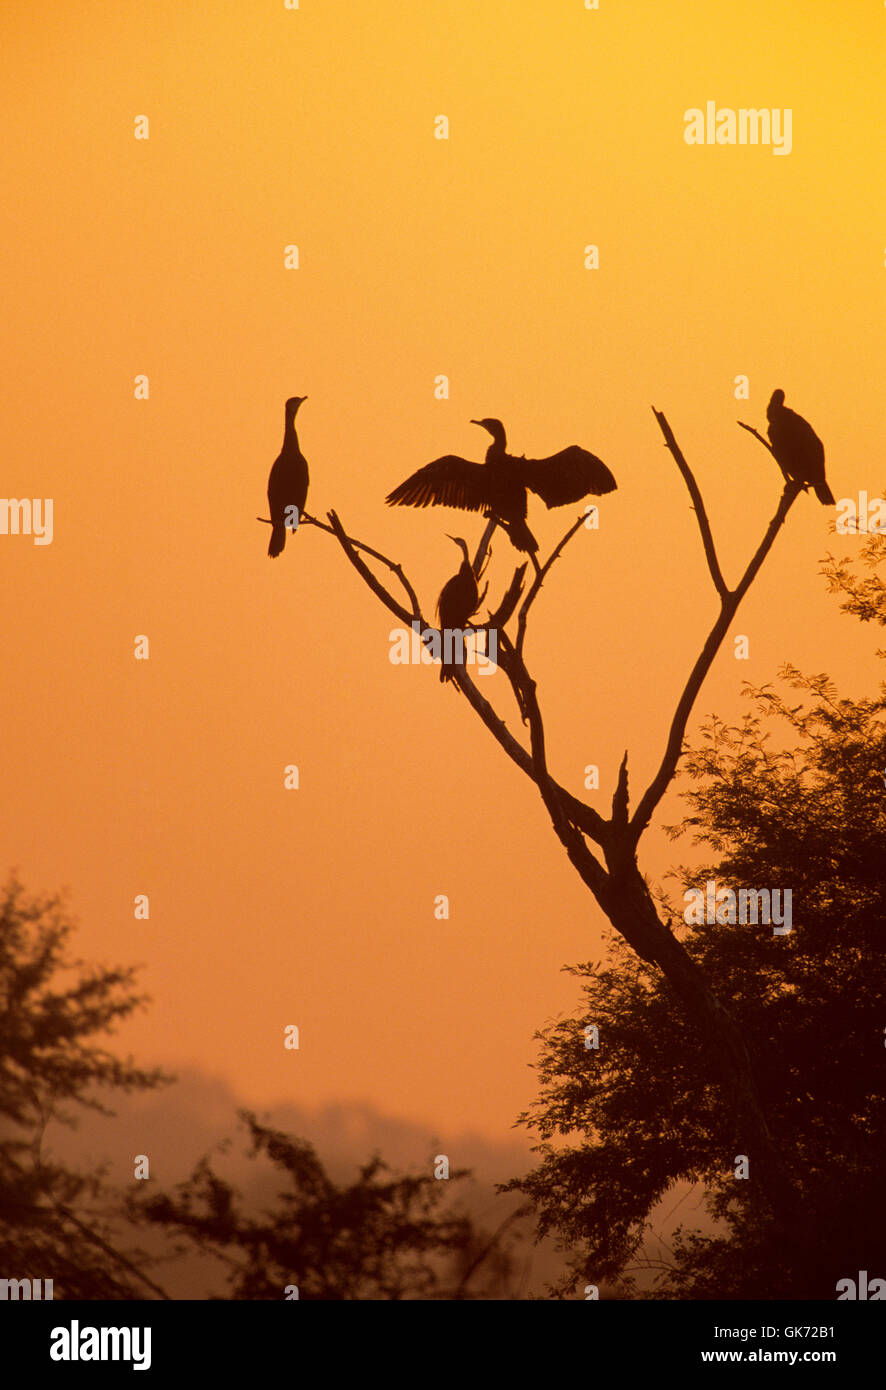 Indian Cormorant (Phalacrocorax fuscicollis) and Darter (Anhinga melanogaster) with wings spread out, at sunset - Stock Image